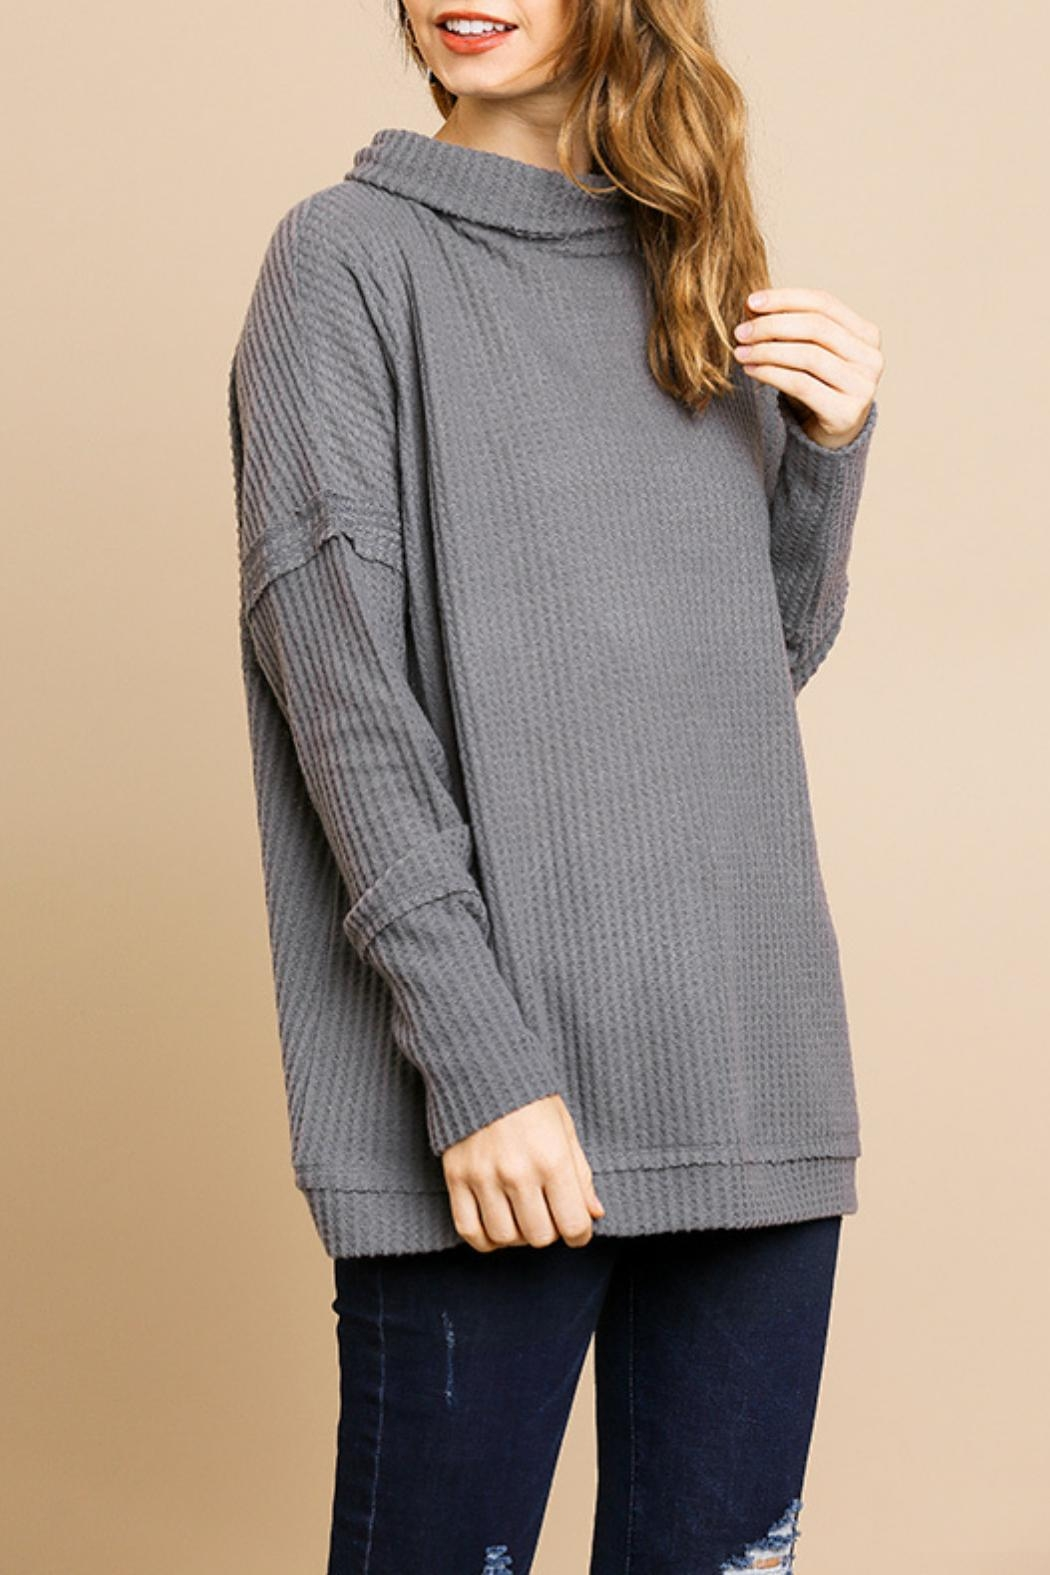 Umgee USA Charcoal Waffle-Knit Sweater - Main Image